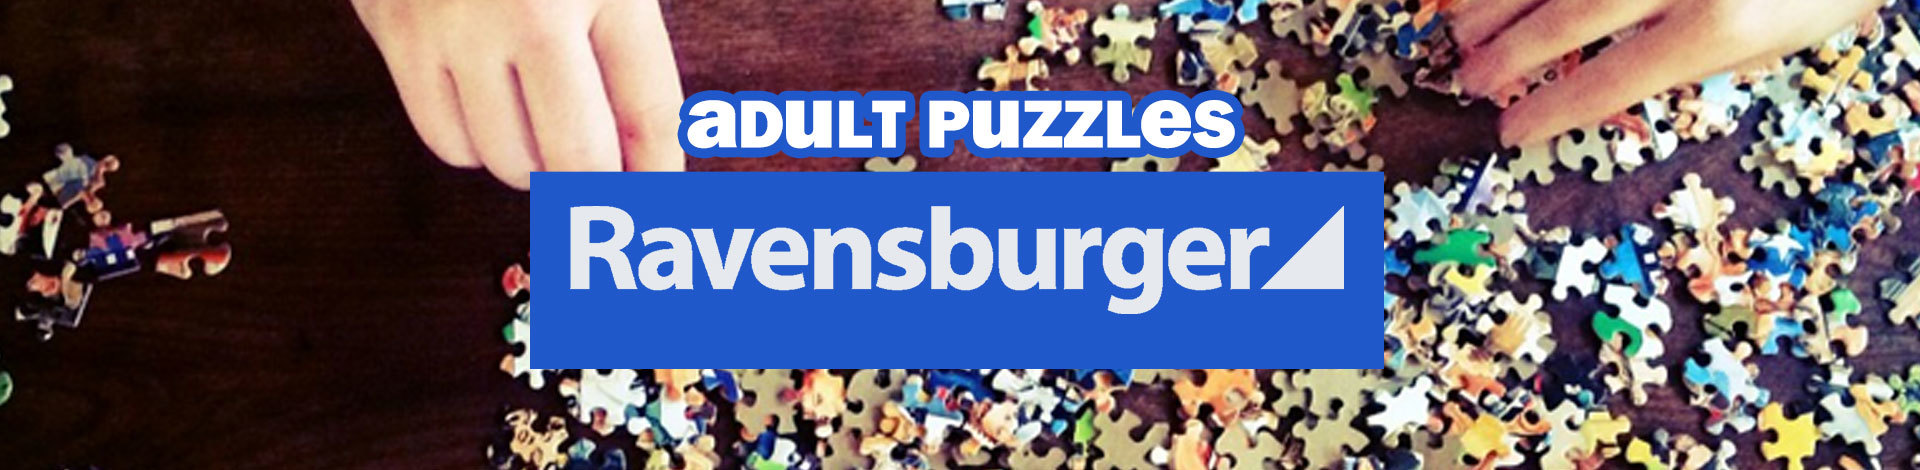 Adults Ravensburger Puzzles